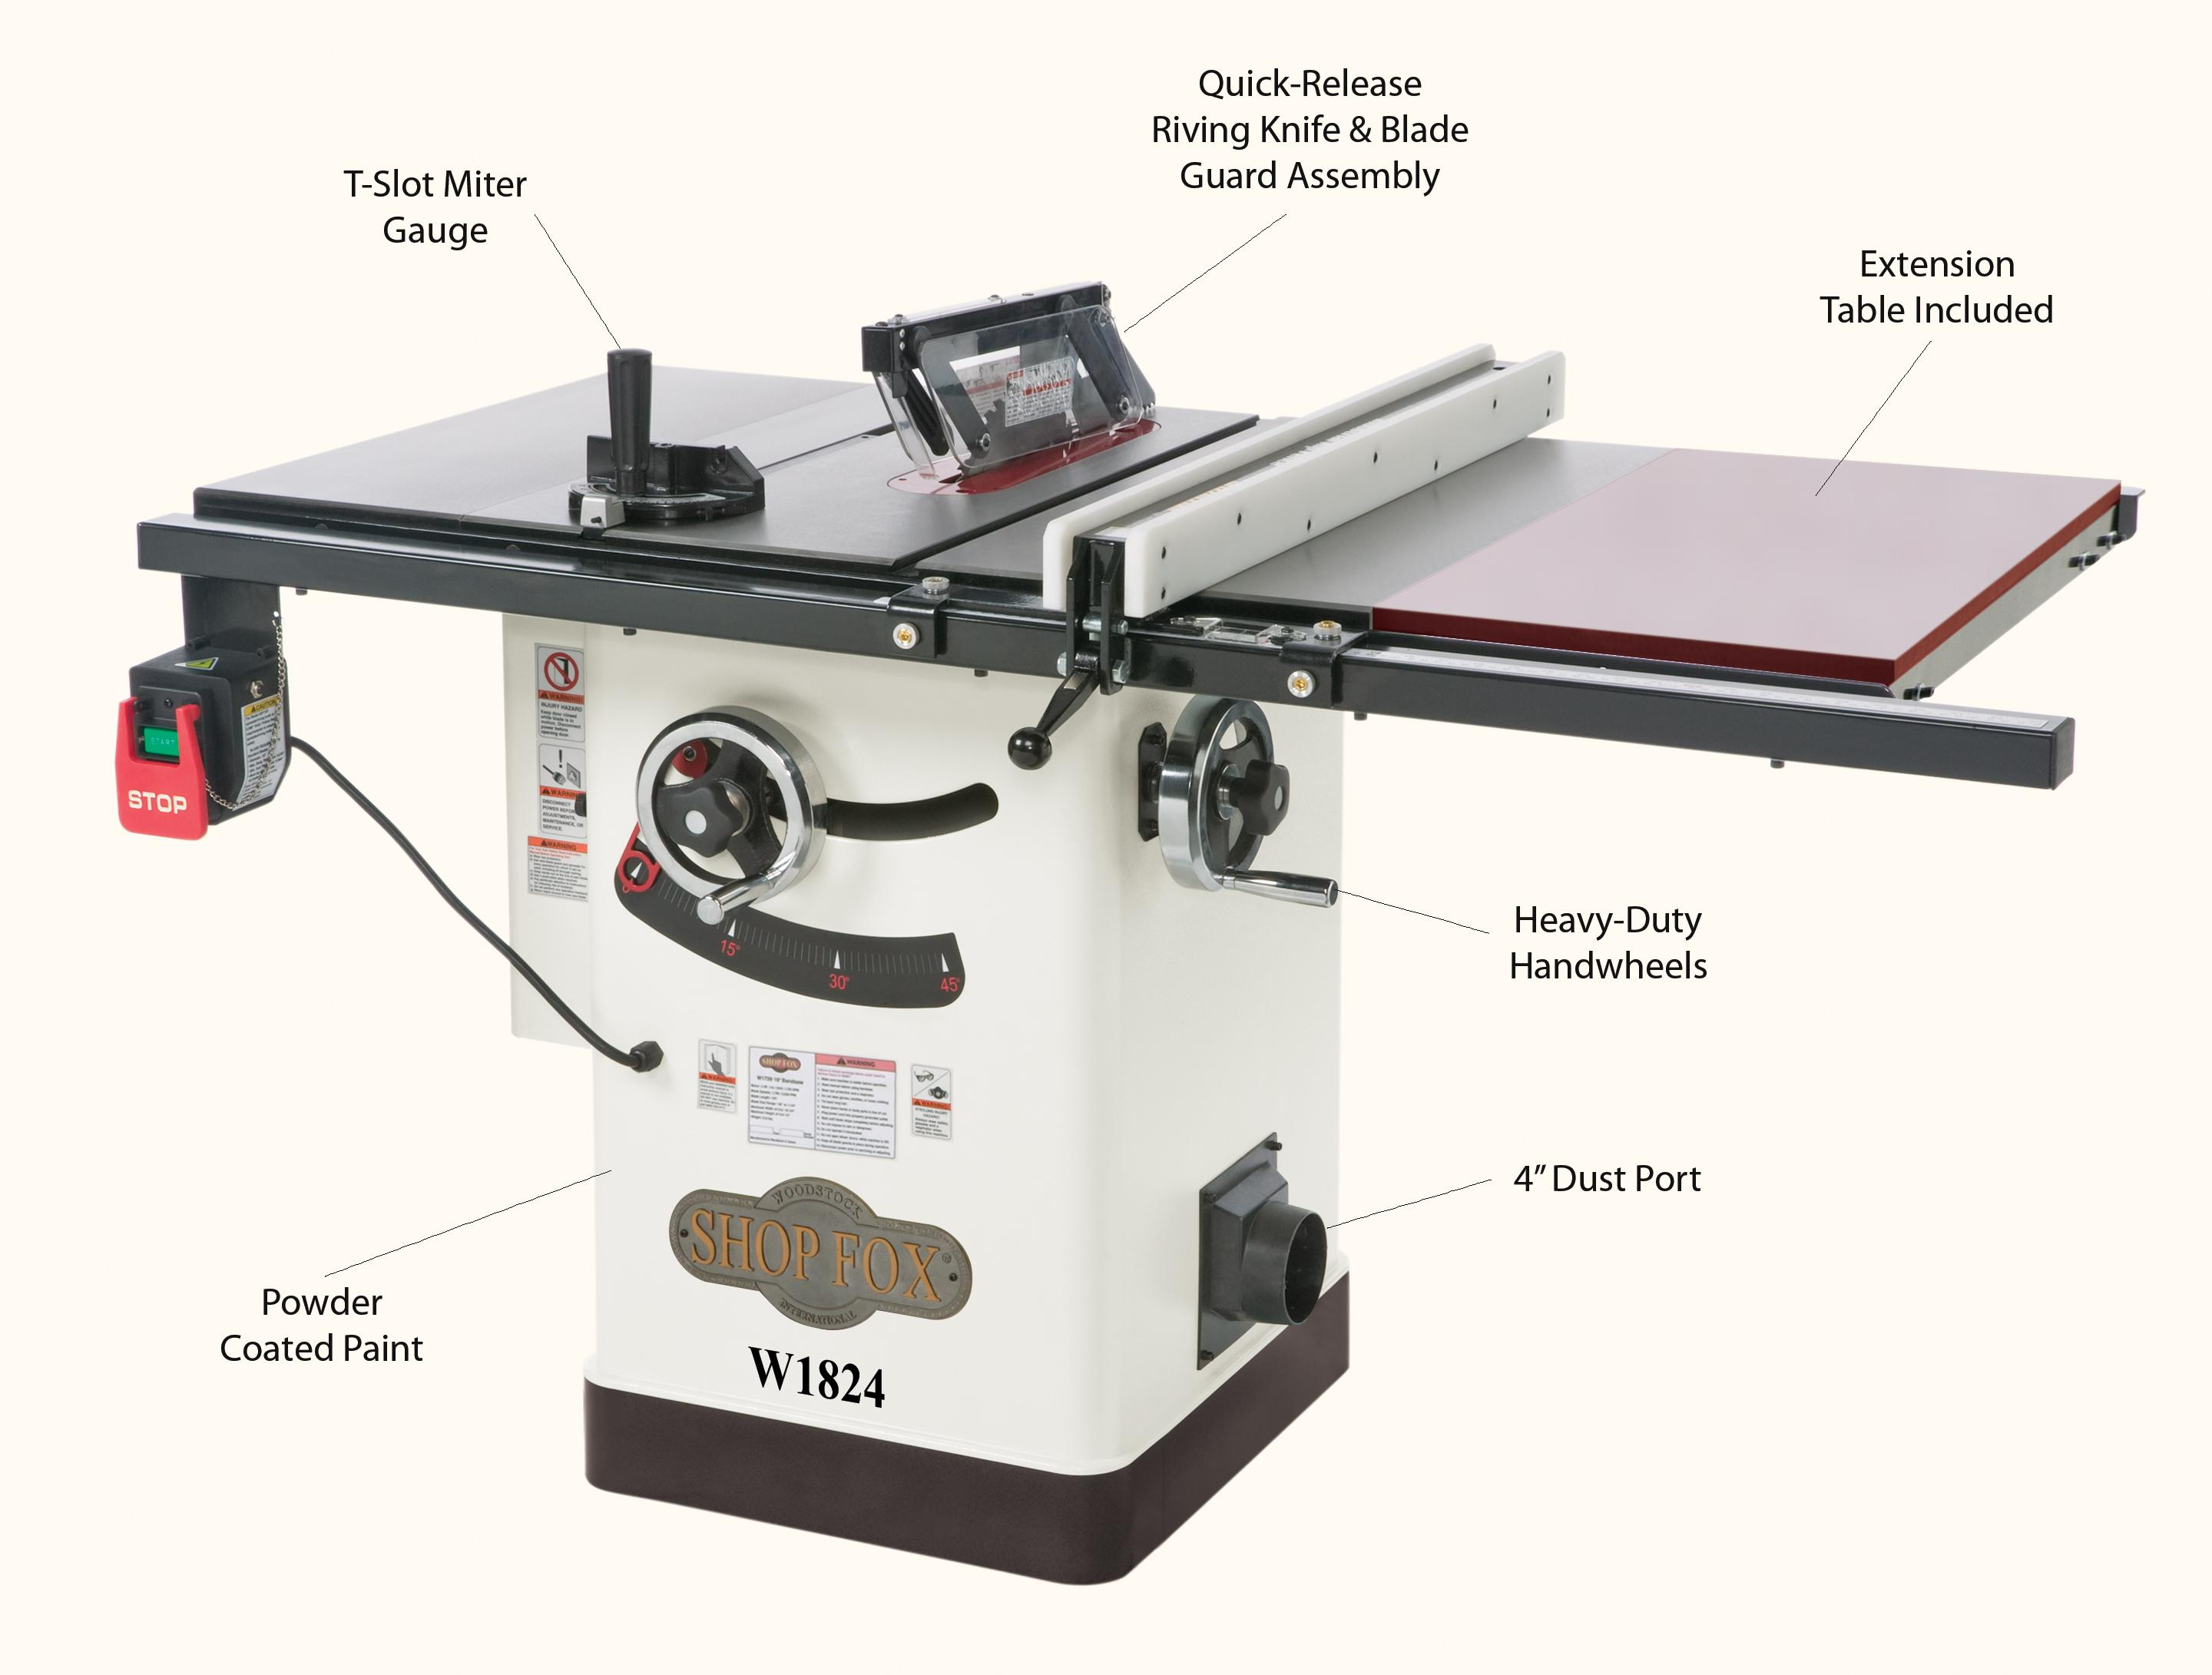 Shop fox w1824 hybrid table saw with extension table power table view larger keyboard keysfo Choice Image